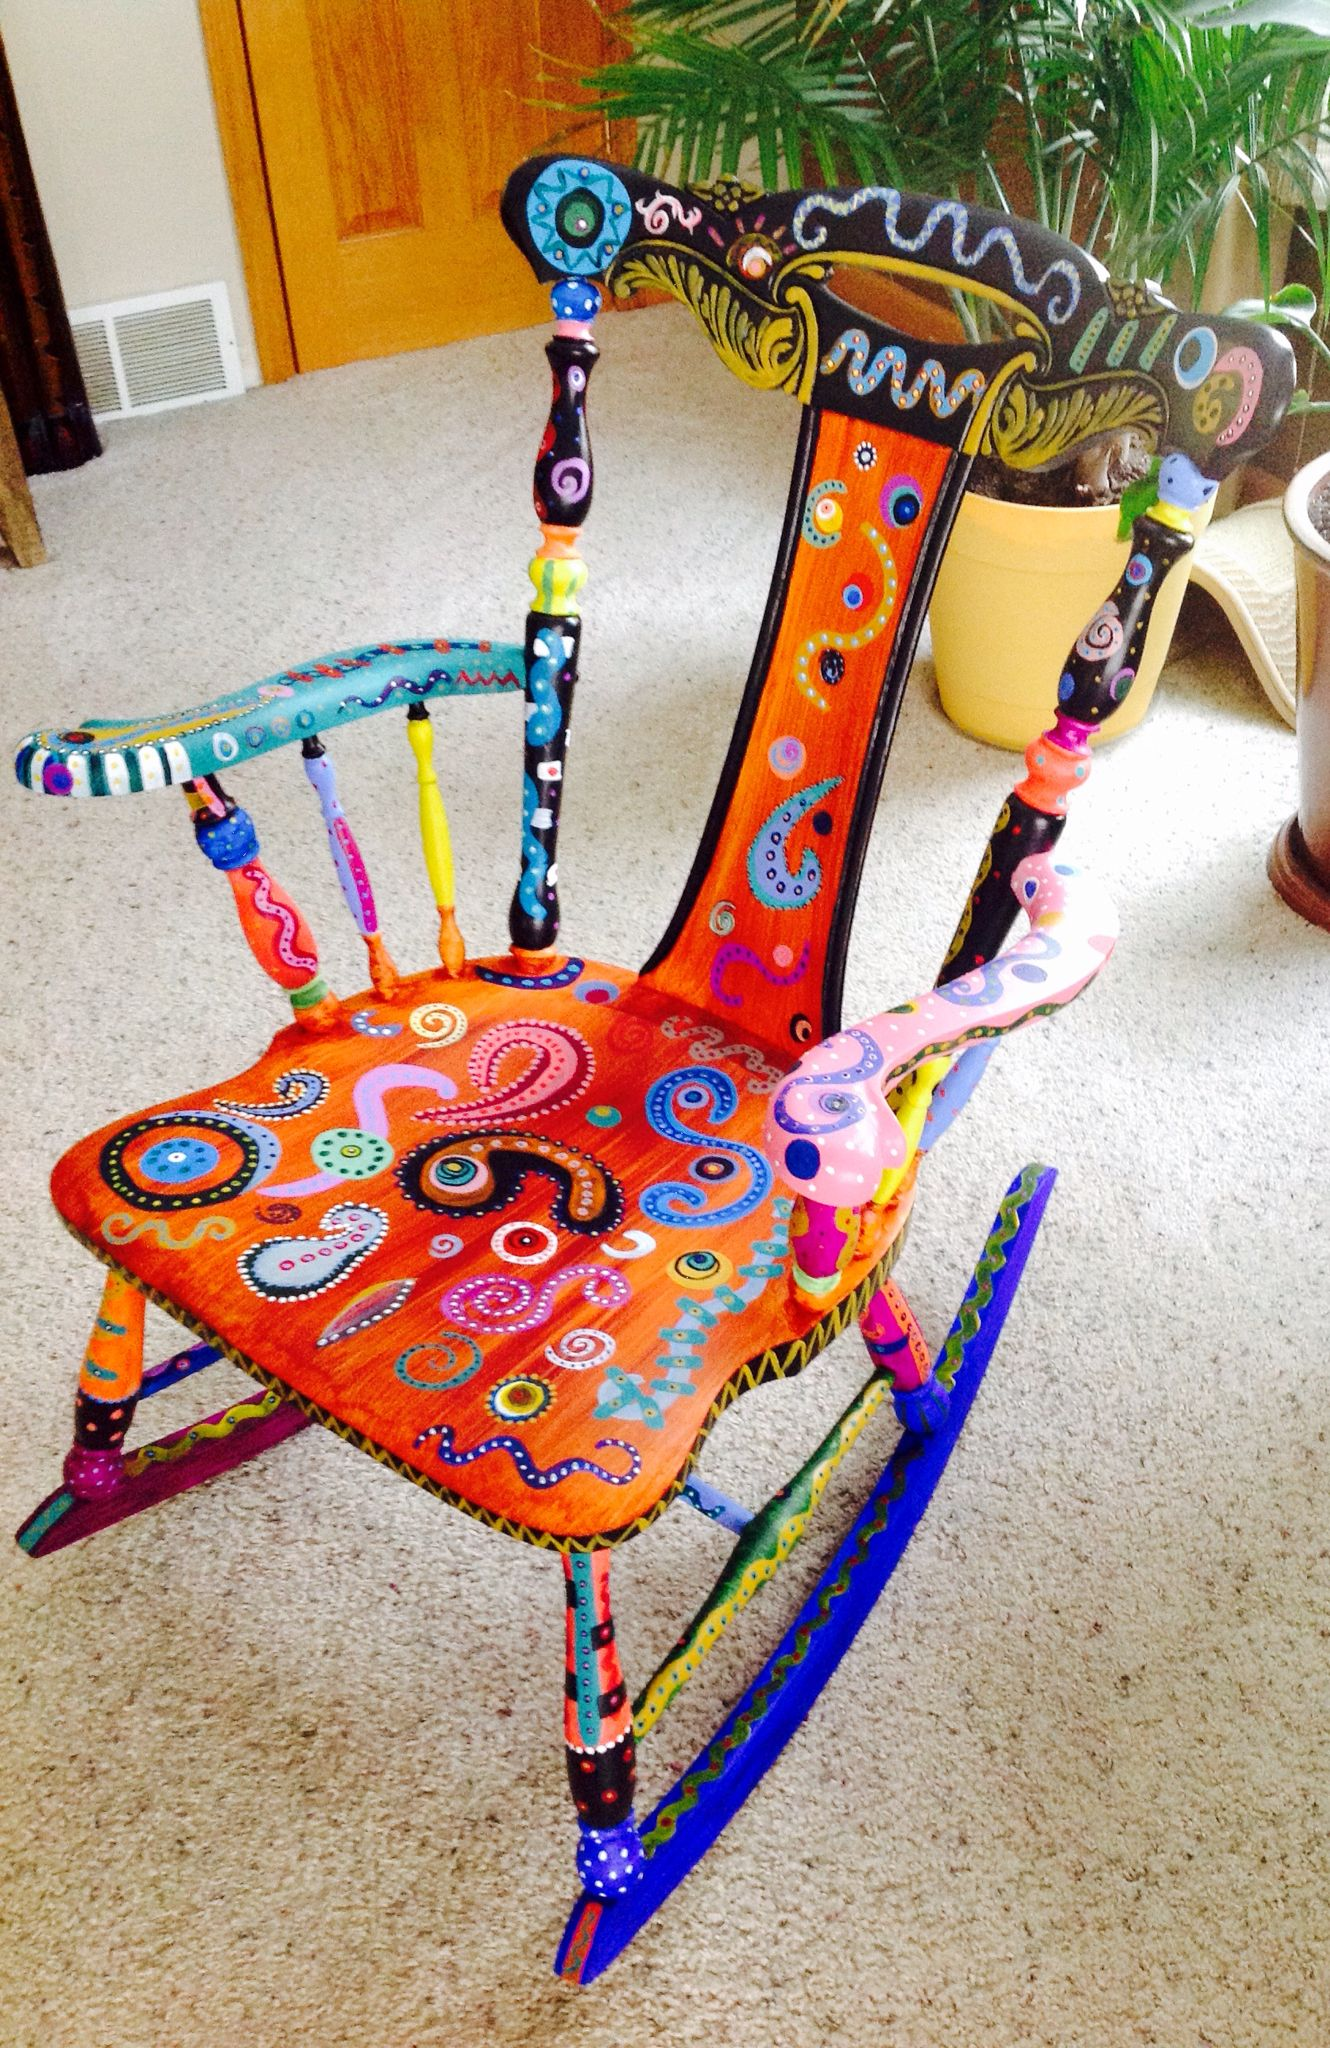 funky wooden chairs nash fishing chair spare parts hand painted whimsical this was a super fun